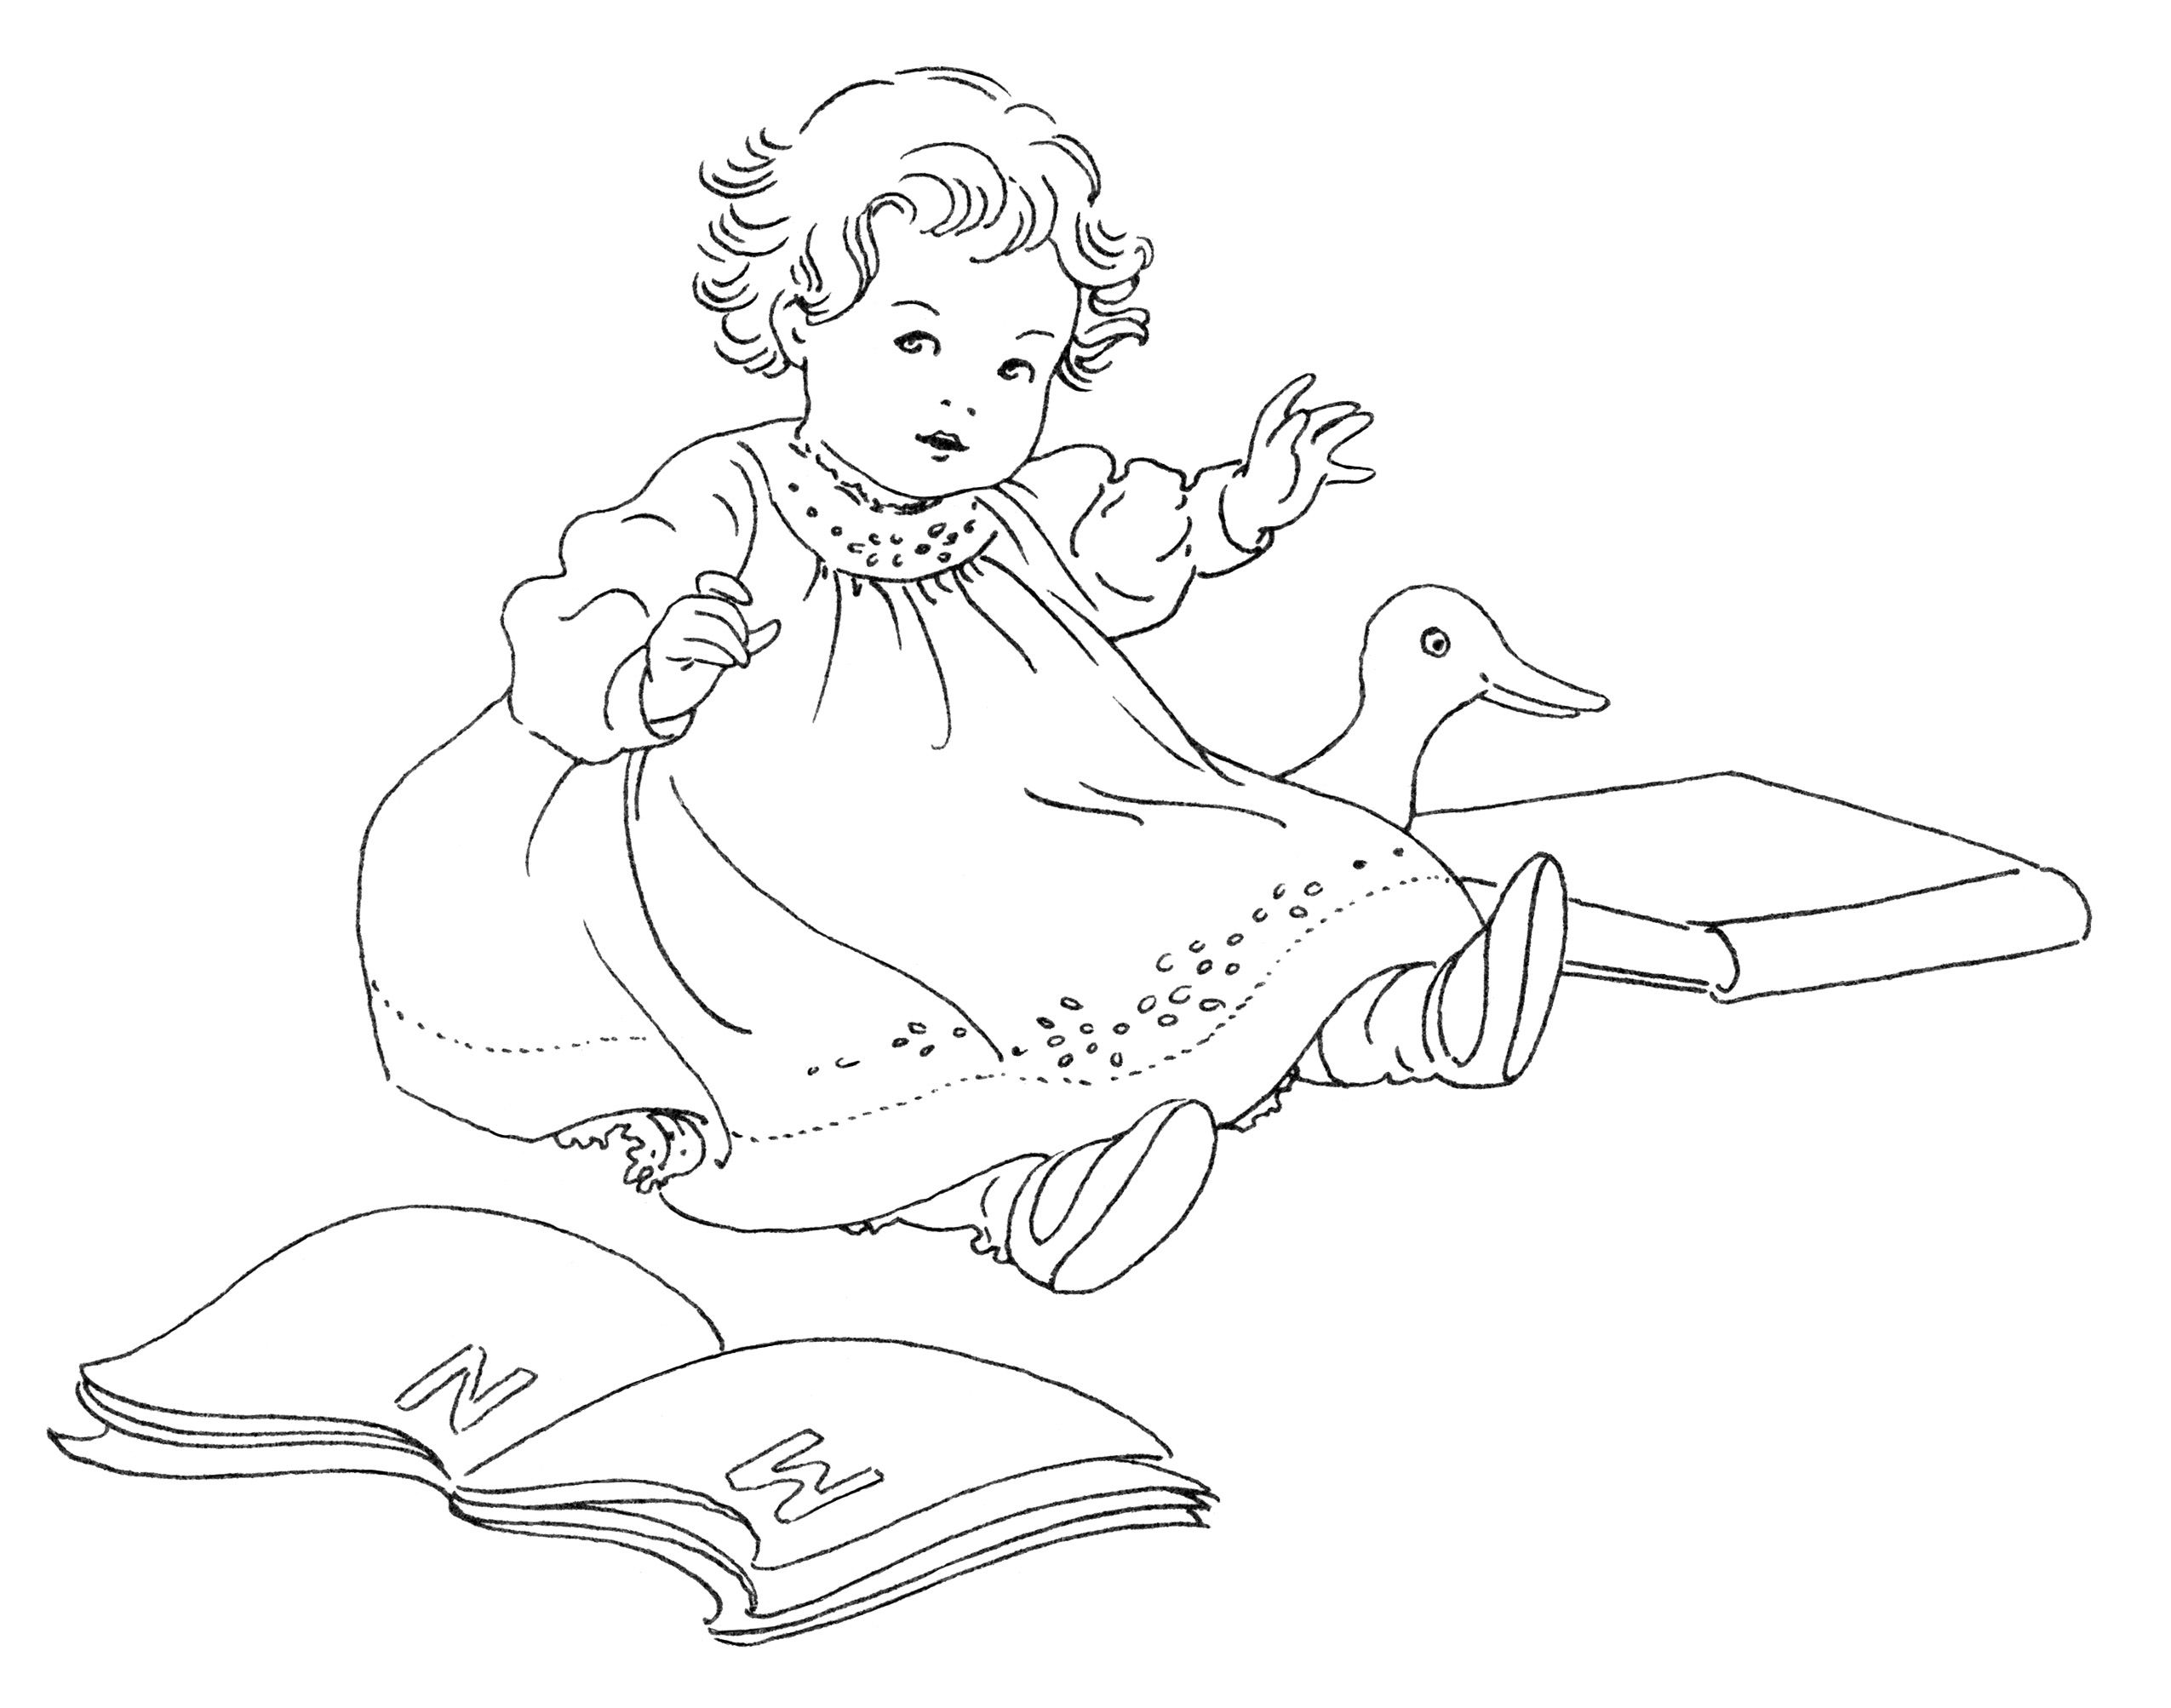 Free Vintage Image Baby with Books | Vintage embroidery ...